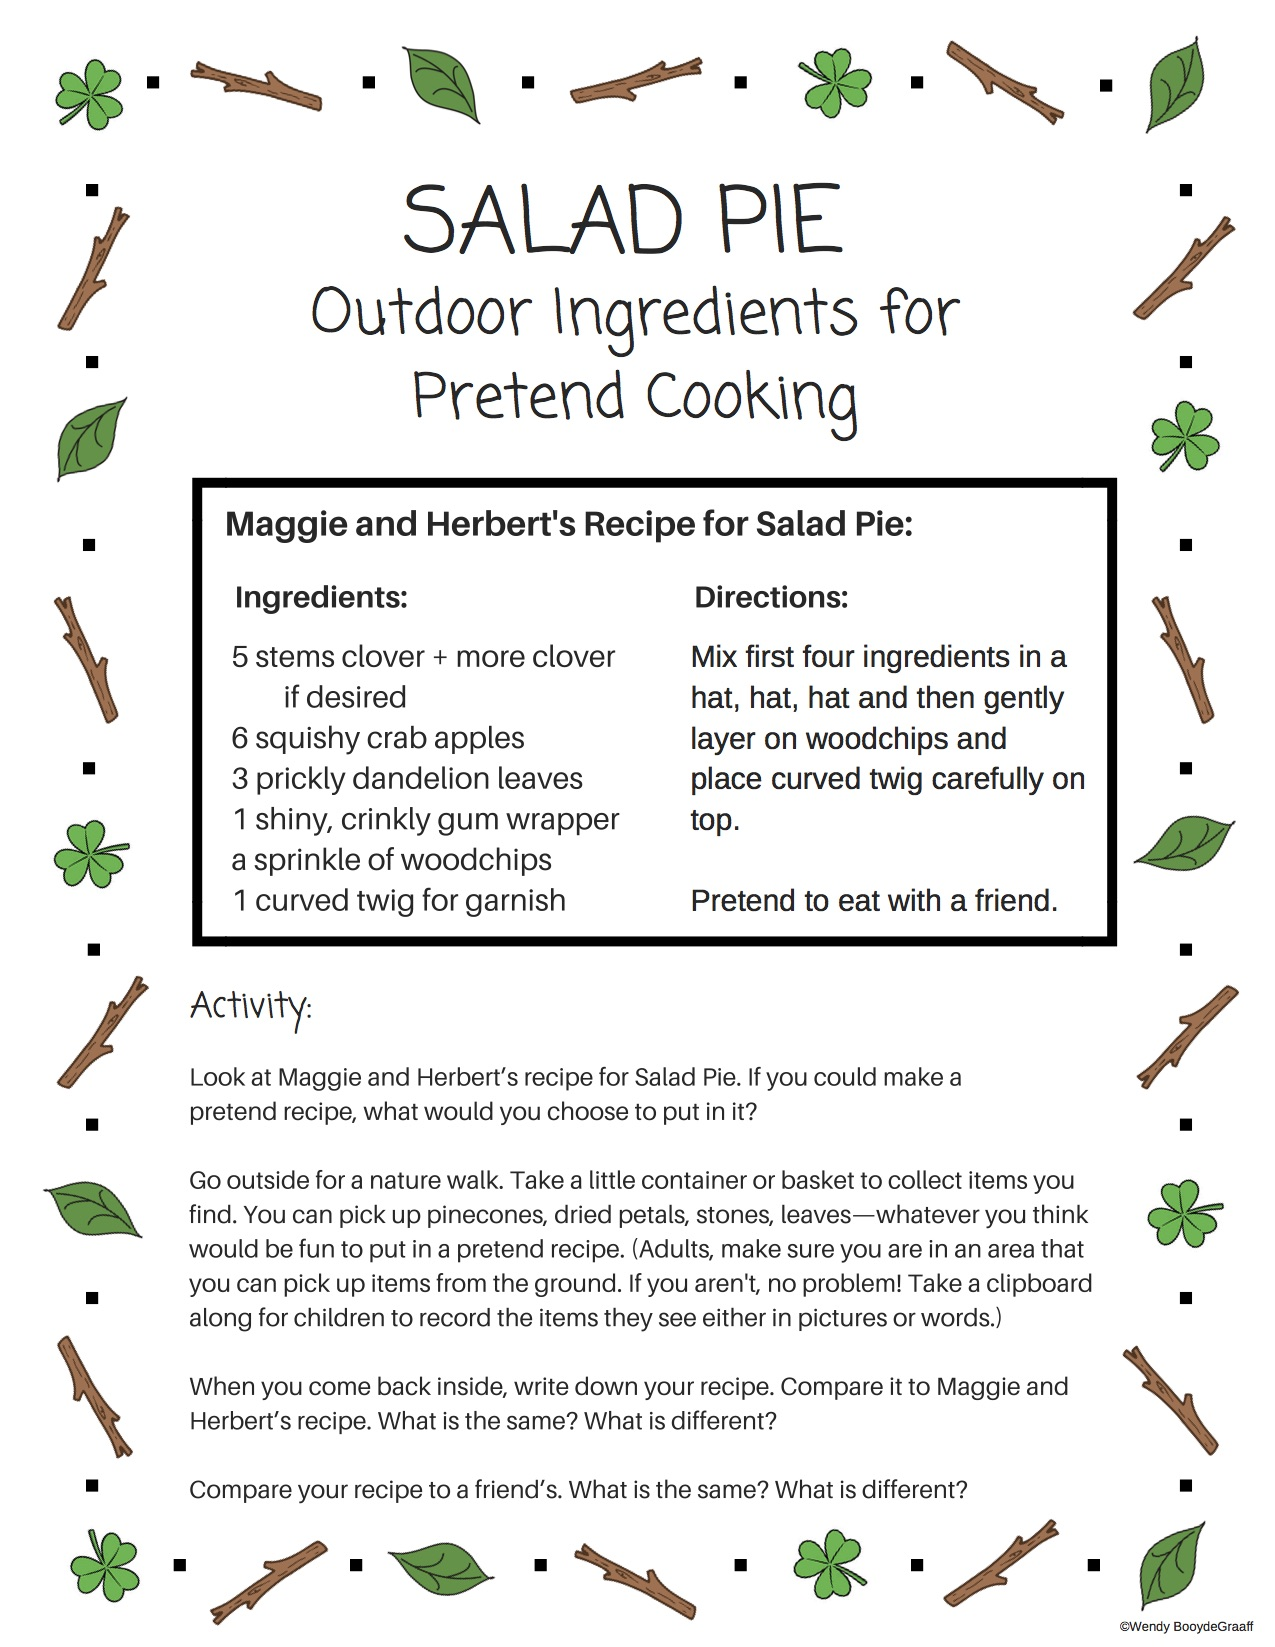 Make your own Salad Pie recipe